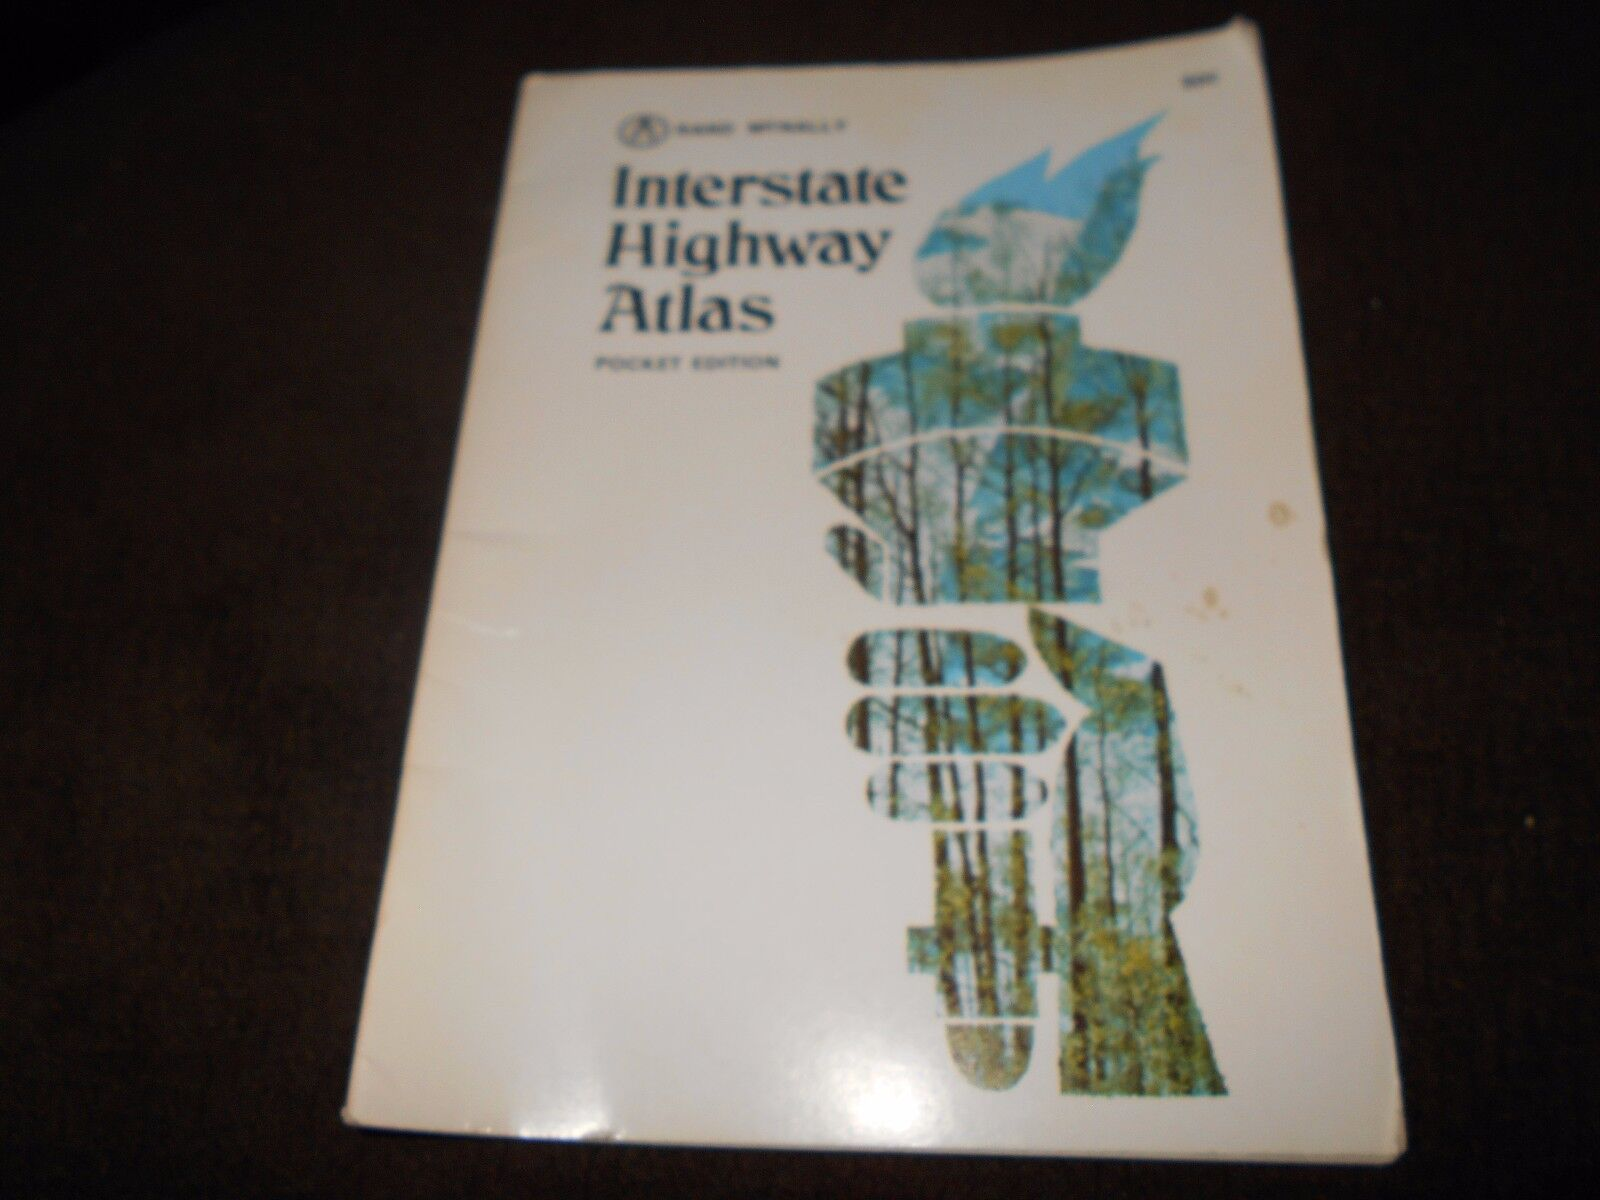 1972 Buick Rand McNally Interstate Highway Atlas From Plymouth/Chrysler Dealers